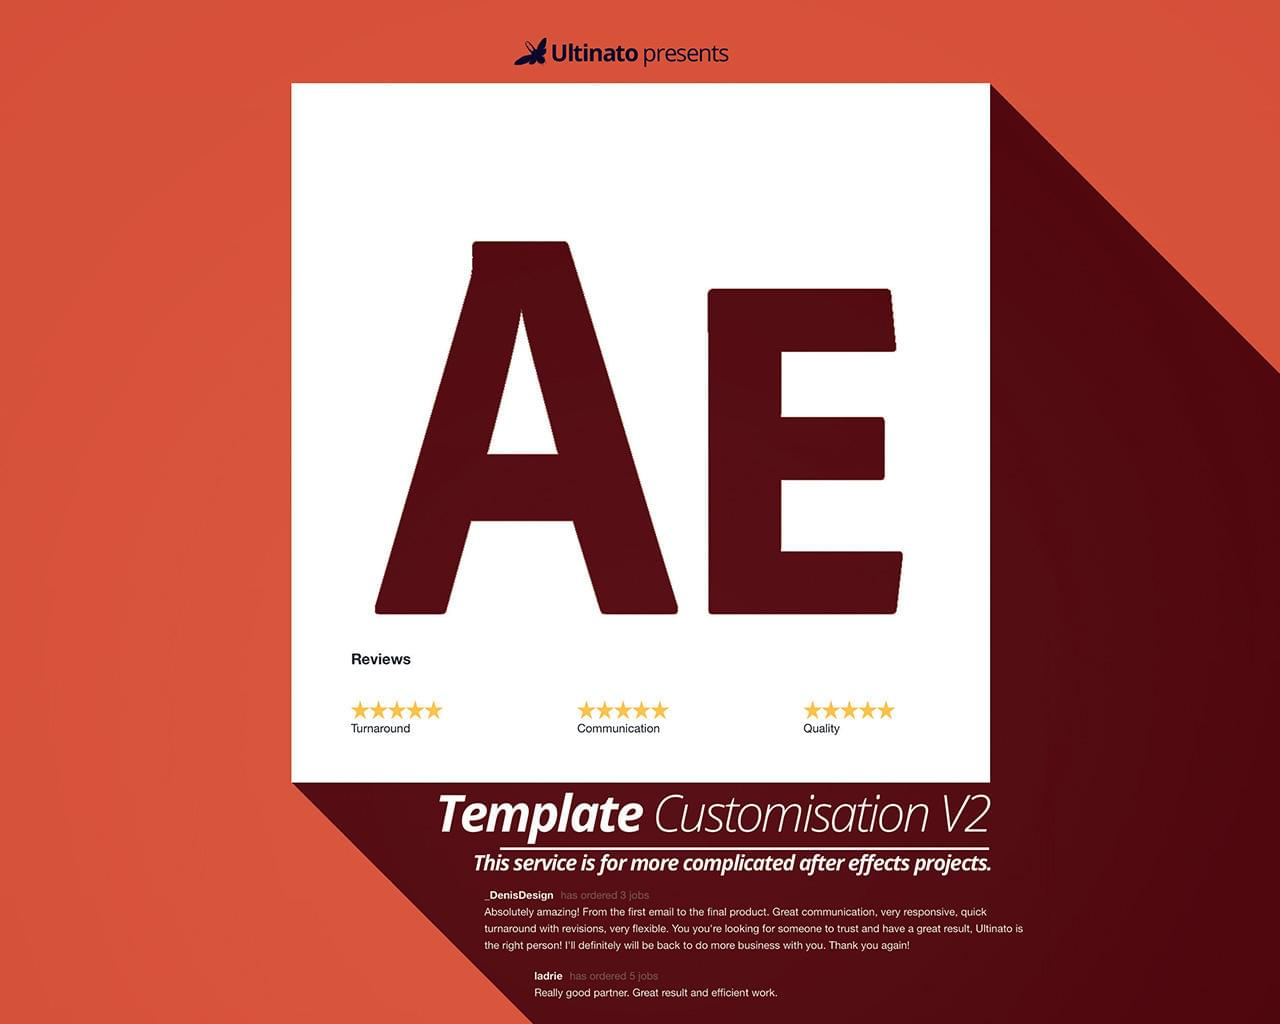 After Effects Template Customisation V2 by Ultinato - 111986